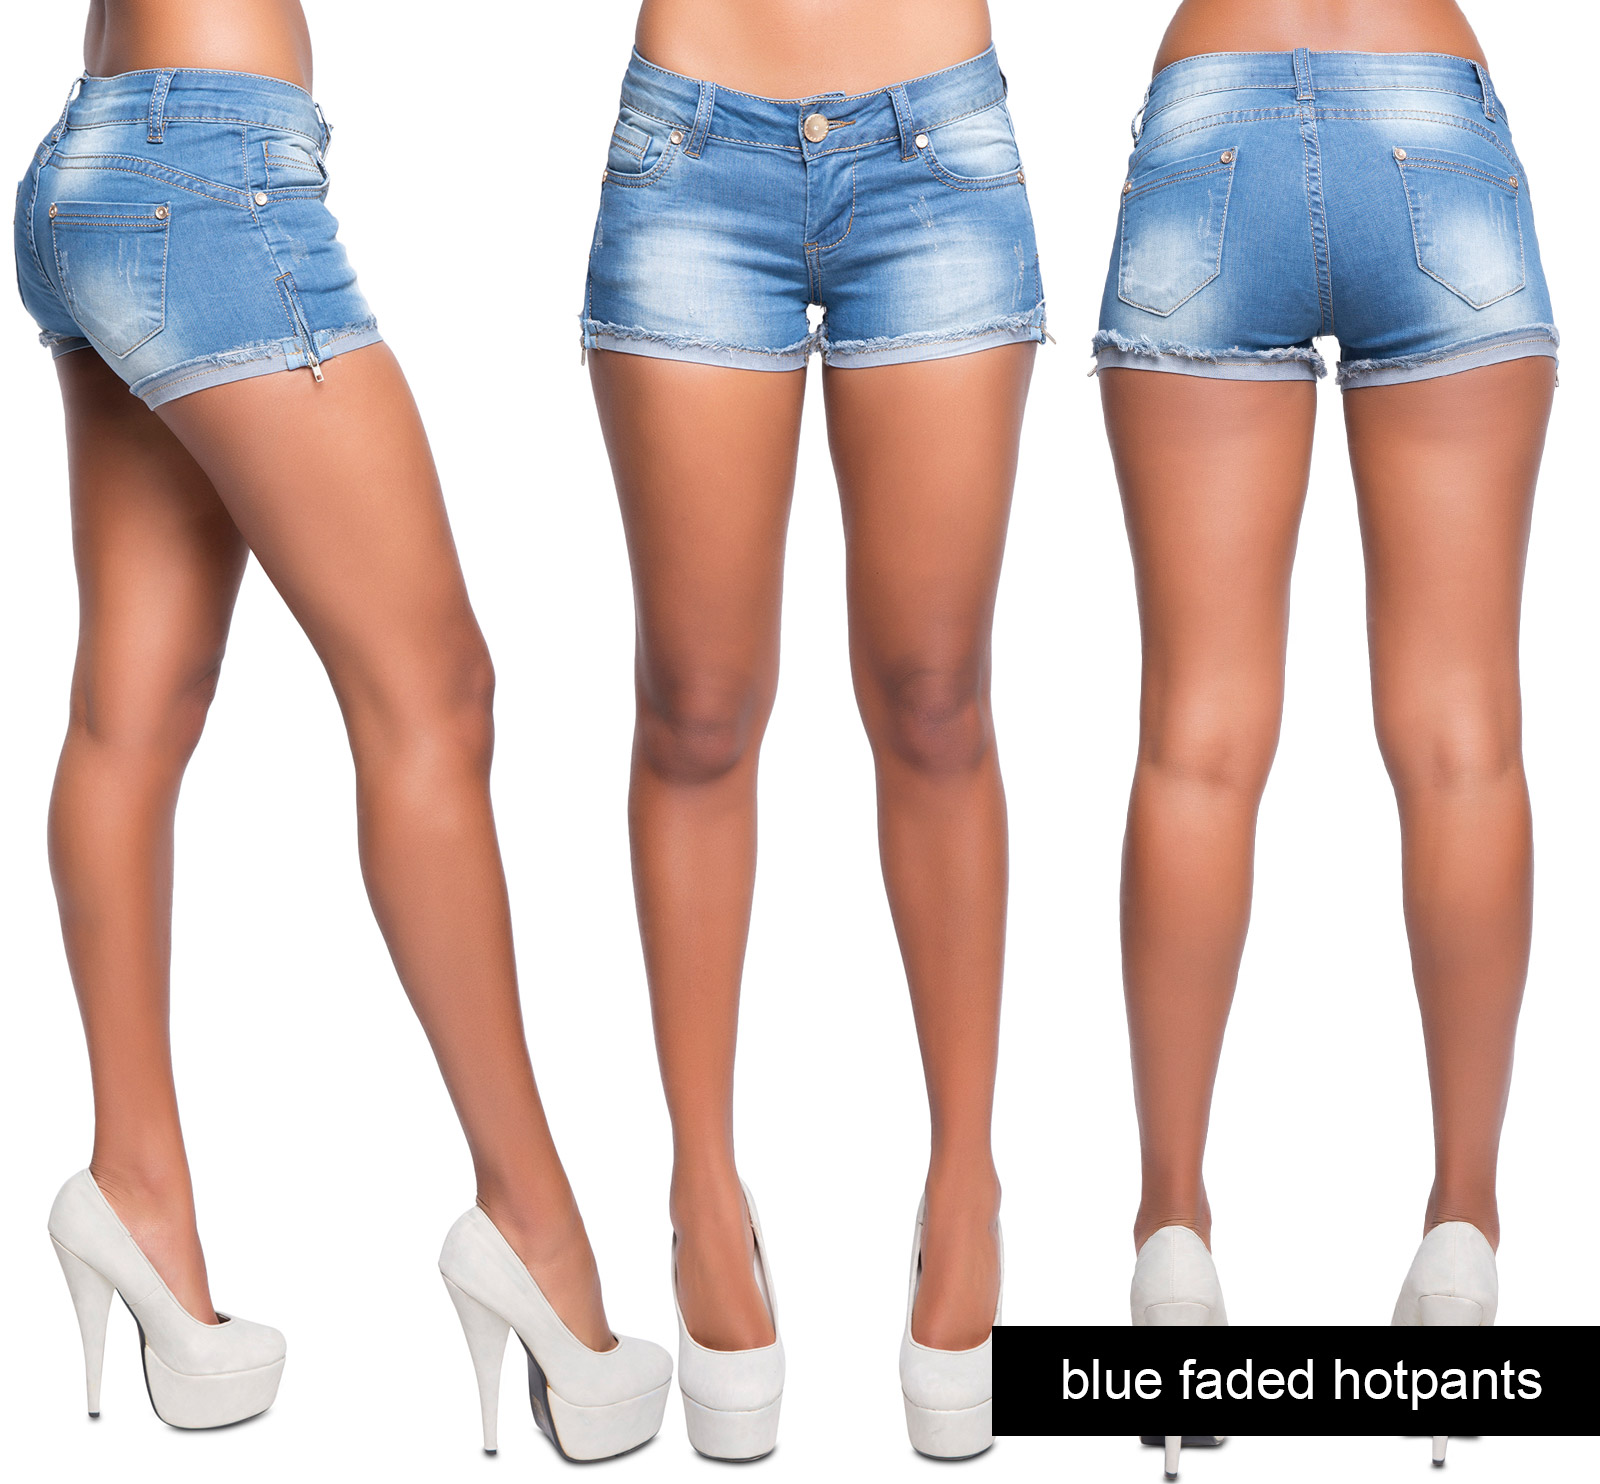 828f9e1c4ee180 Hot Jeans | Hot In Jeans My Favorite Marie Osmond Pics Actually